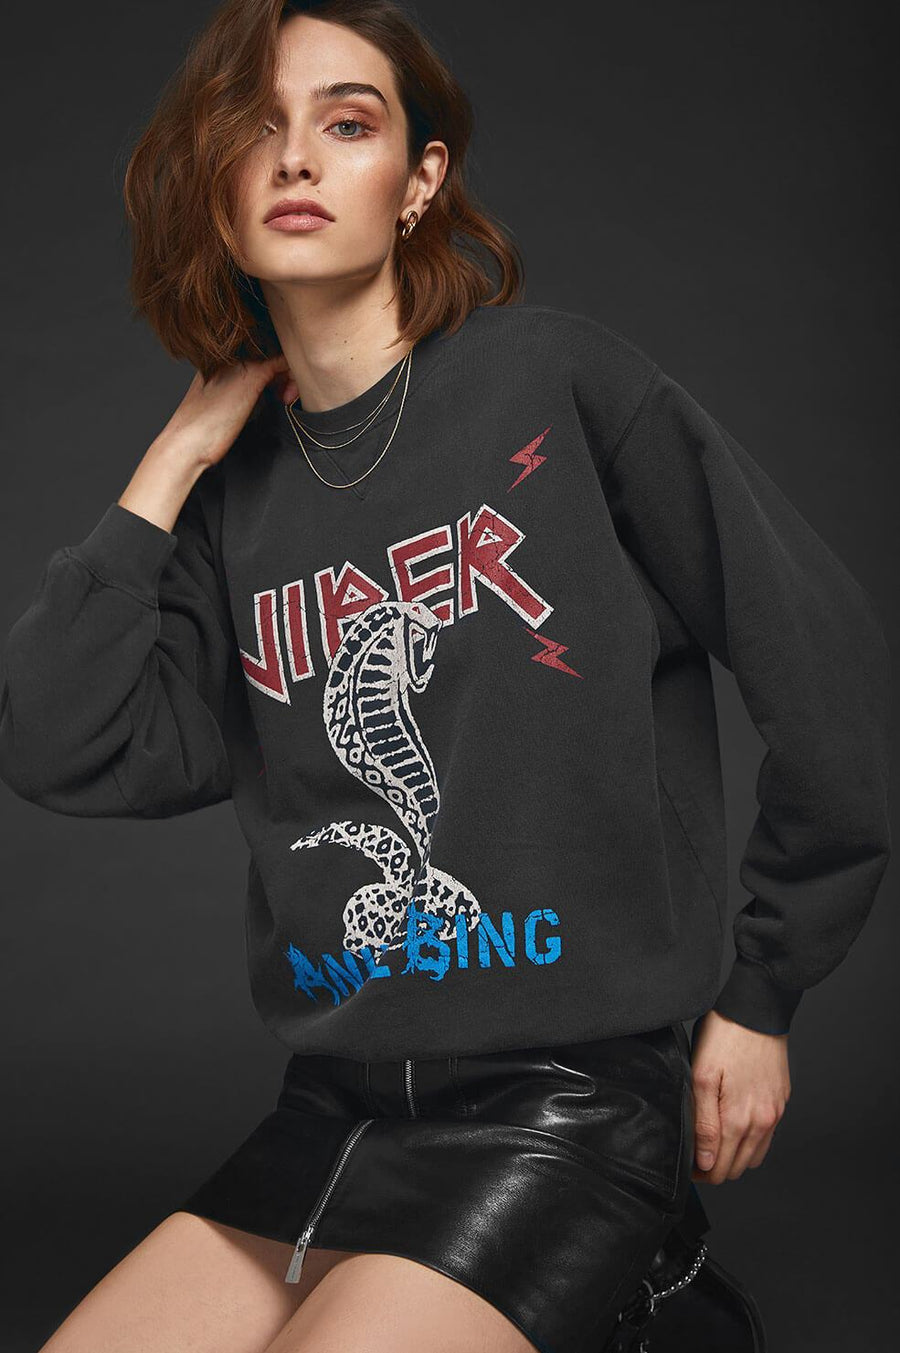 Anine Bing Serpent Sweatshirt from The New Trend